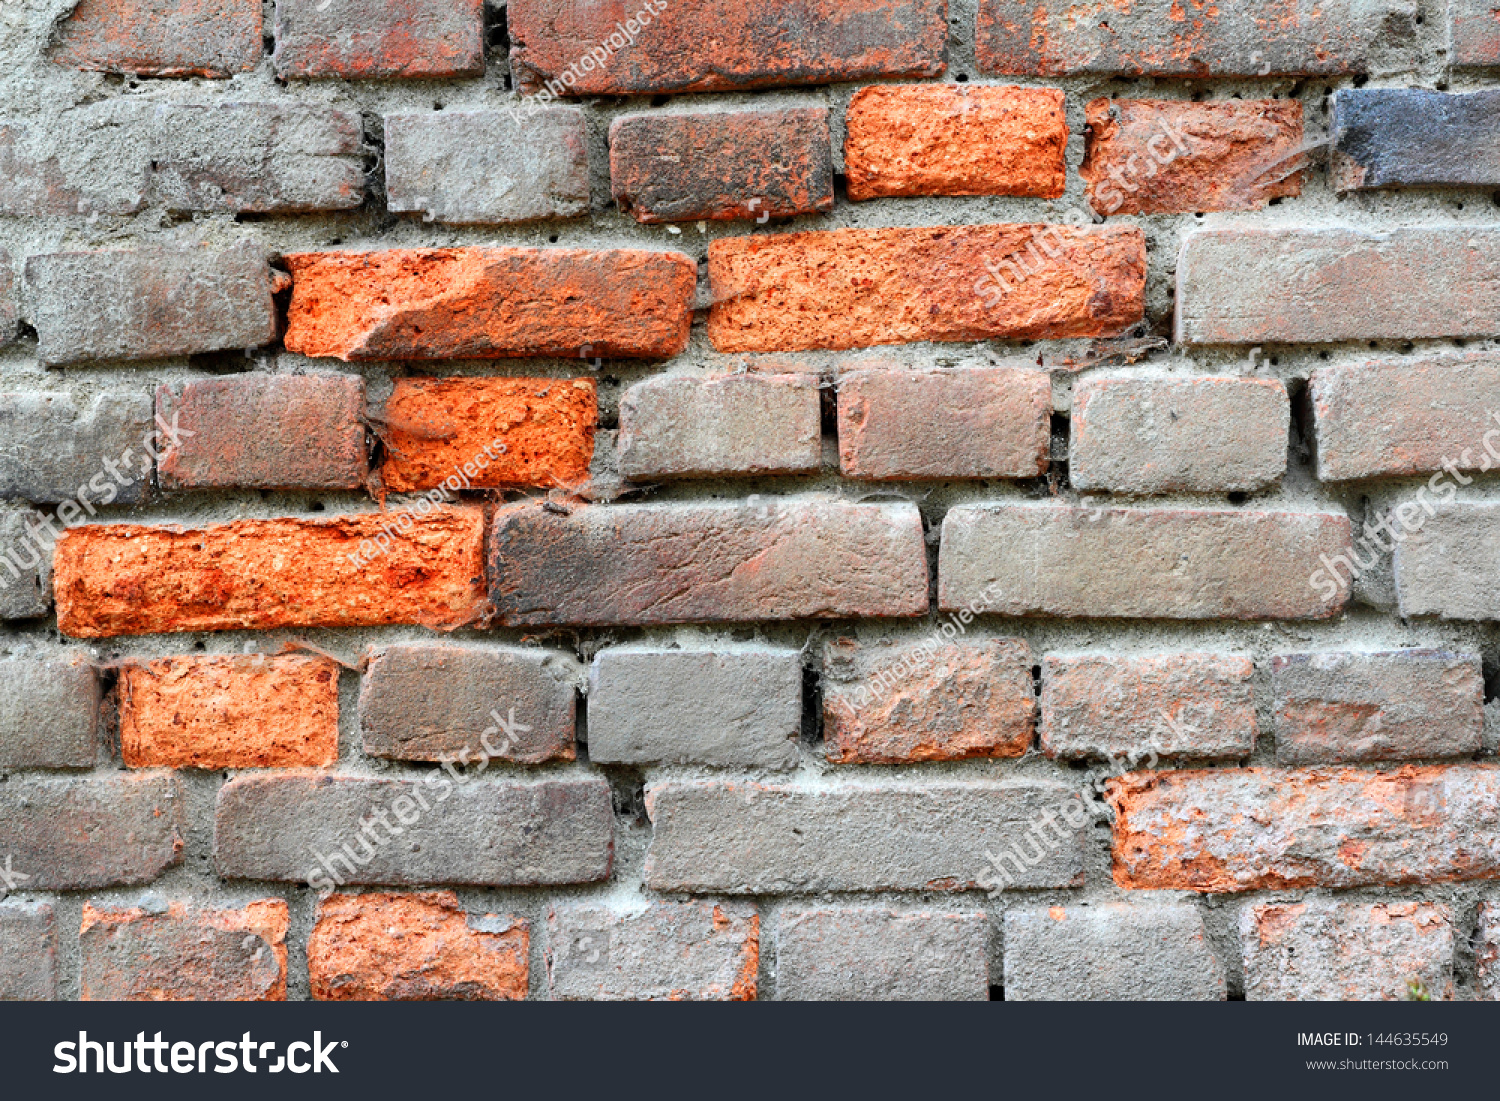 Fire Resistant Brick : Brick durable solid material having high stock photo